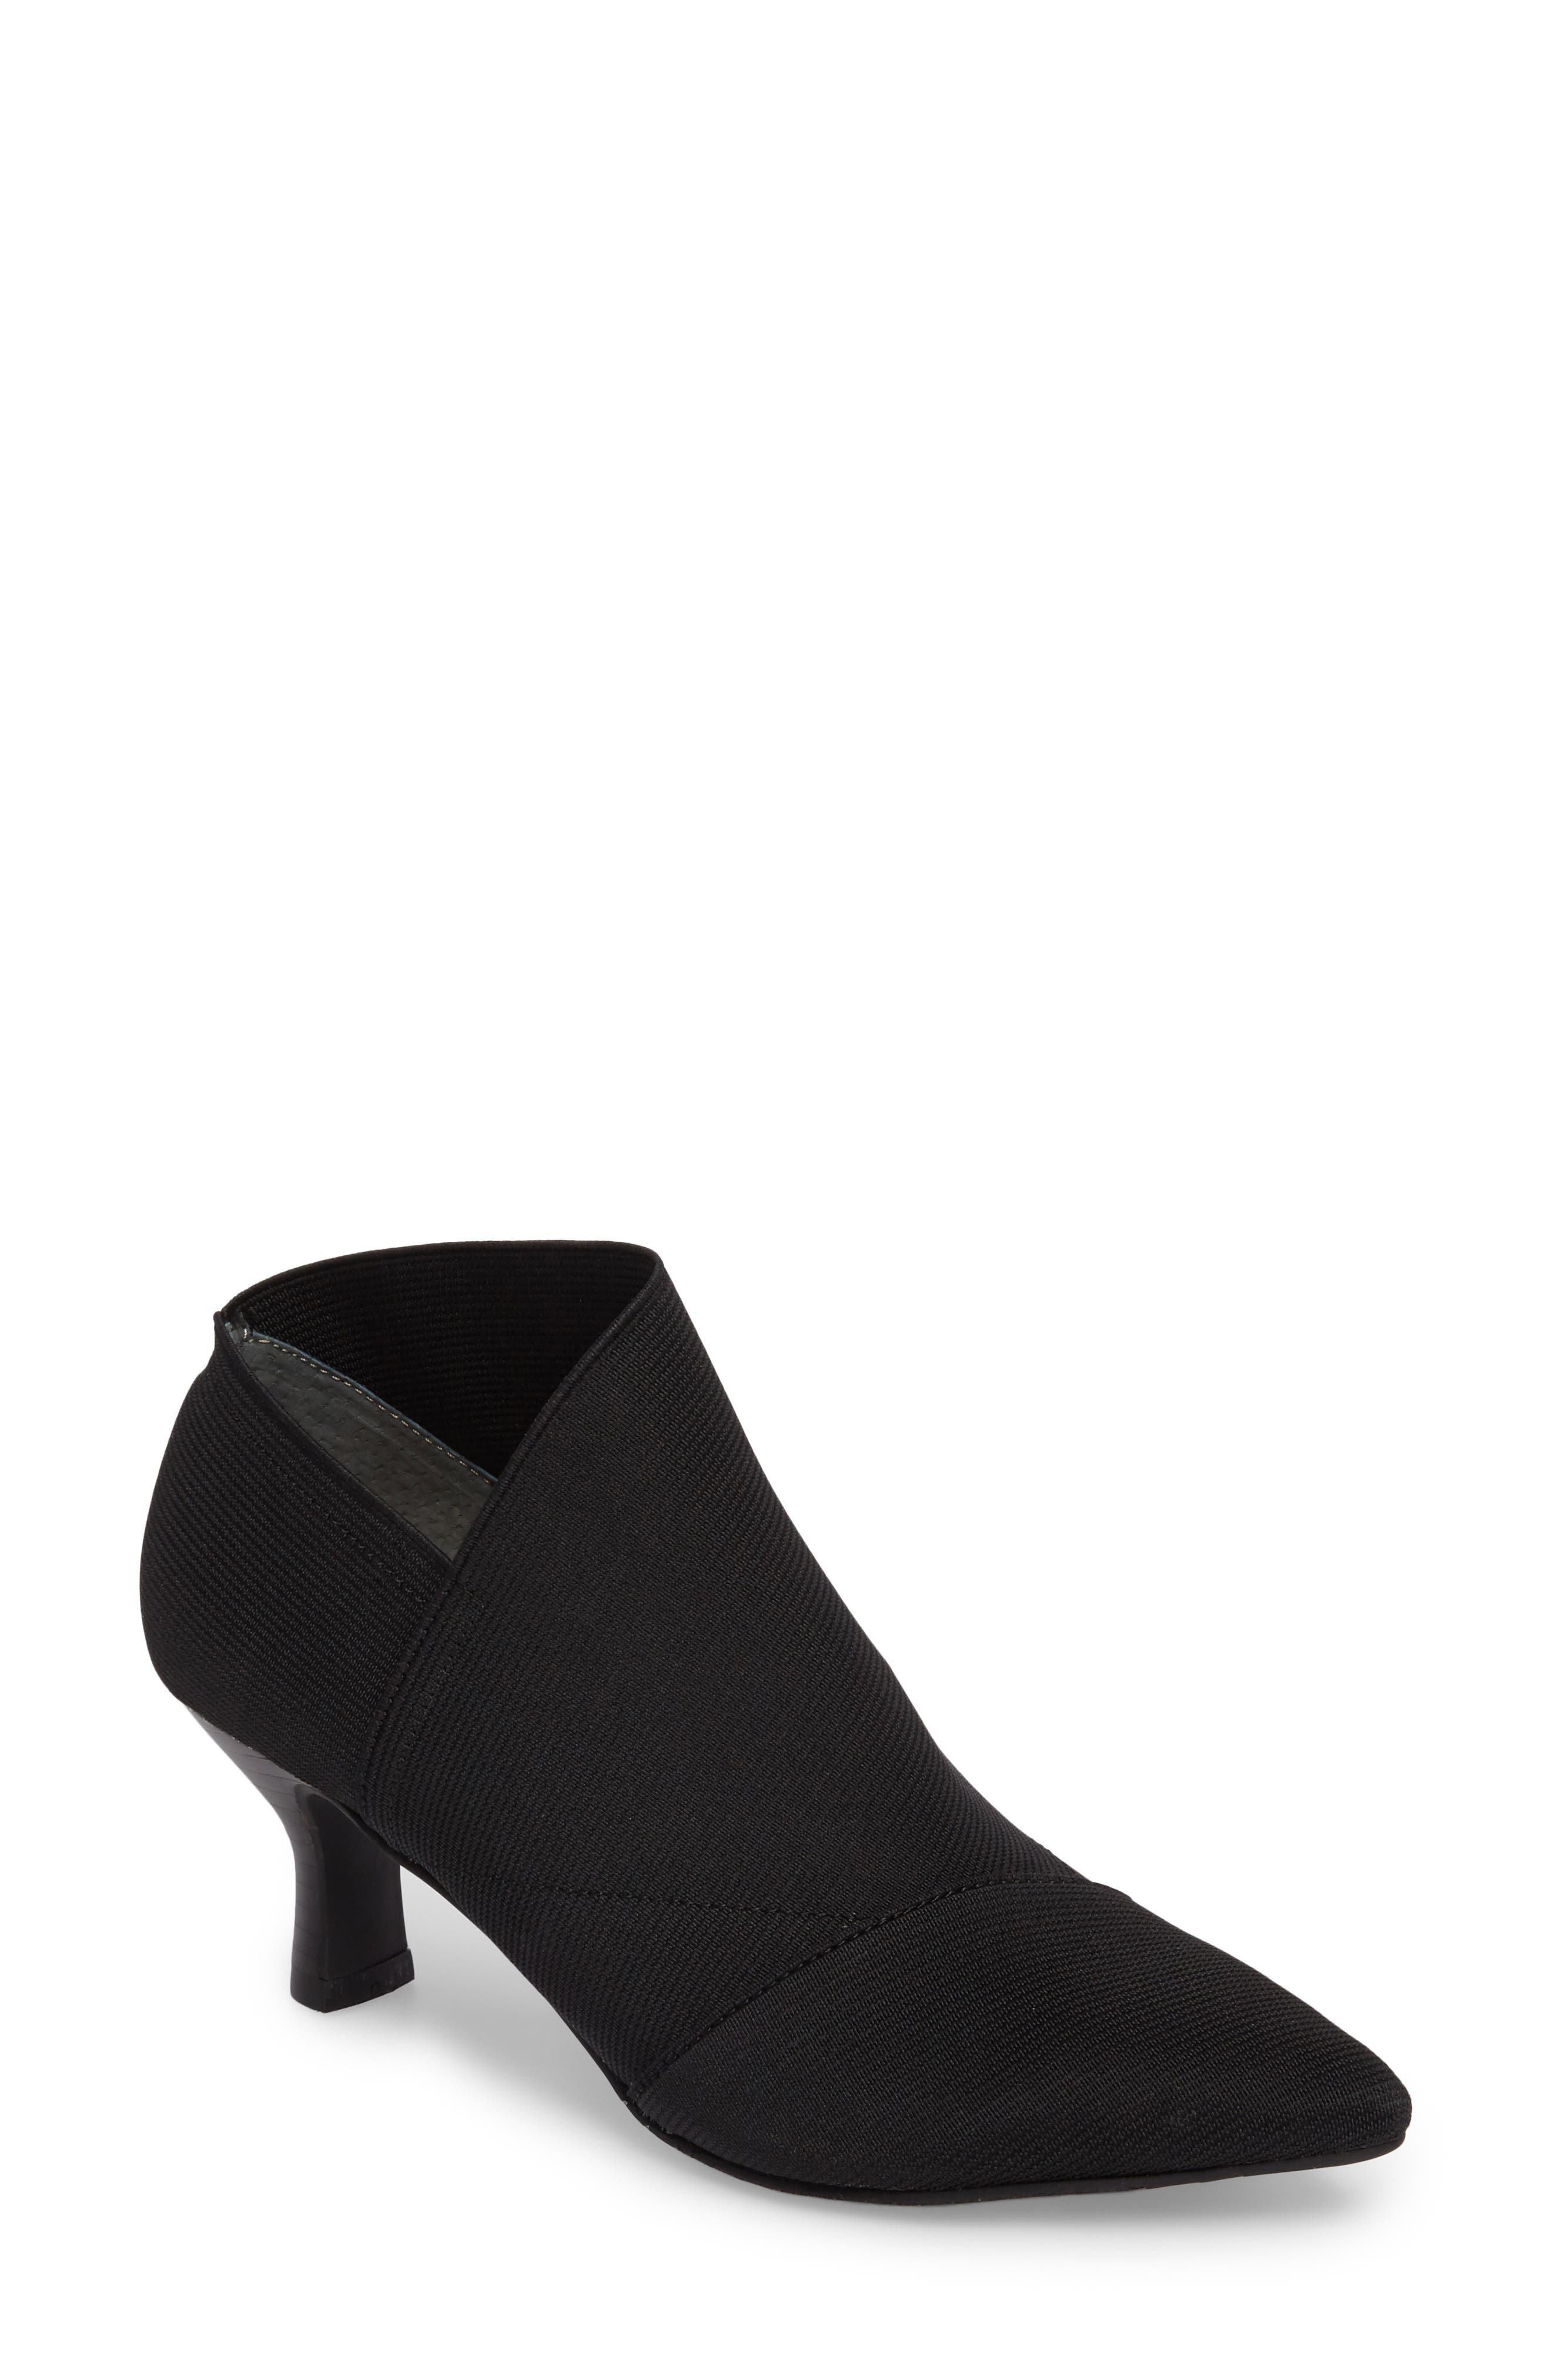 Alternate Image 1 Selected - Adrianna Papell Hayes Pointy Toe Bootie (Women)